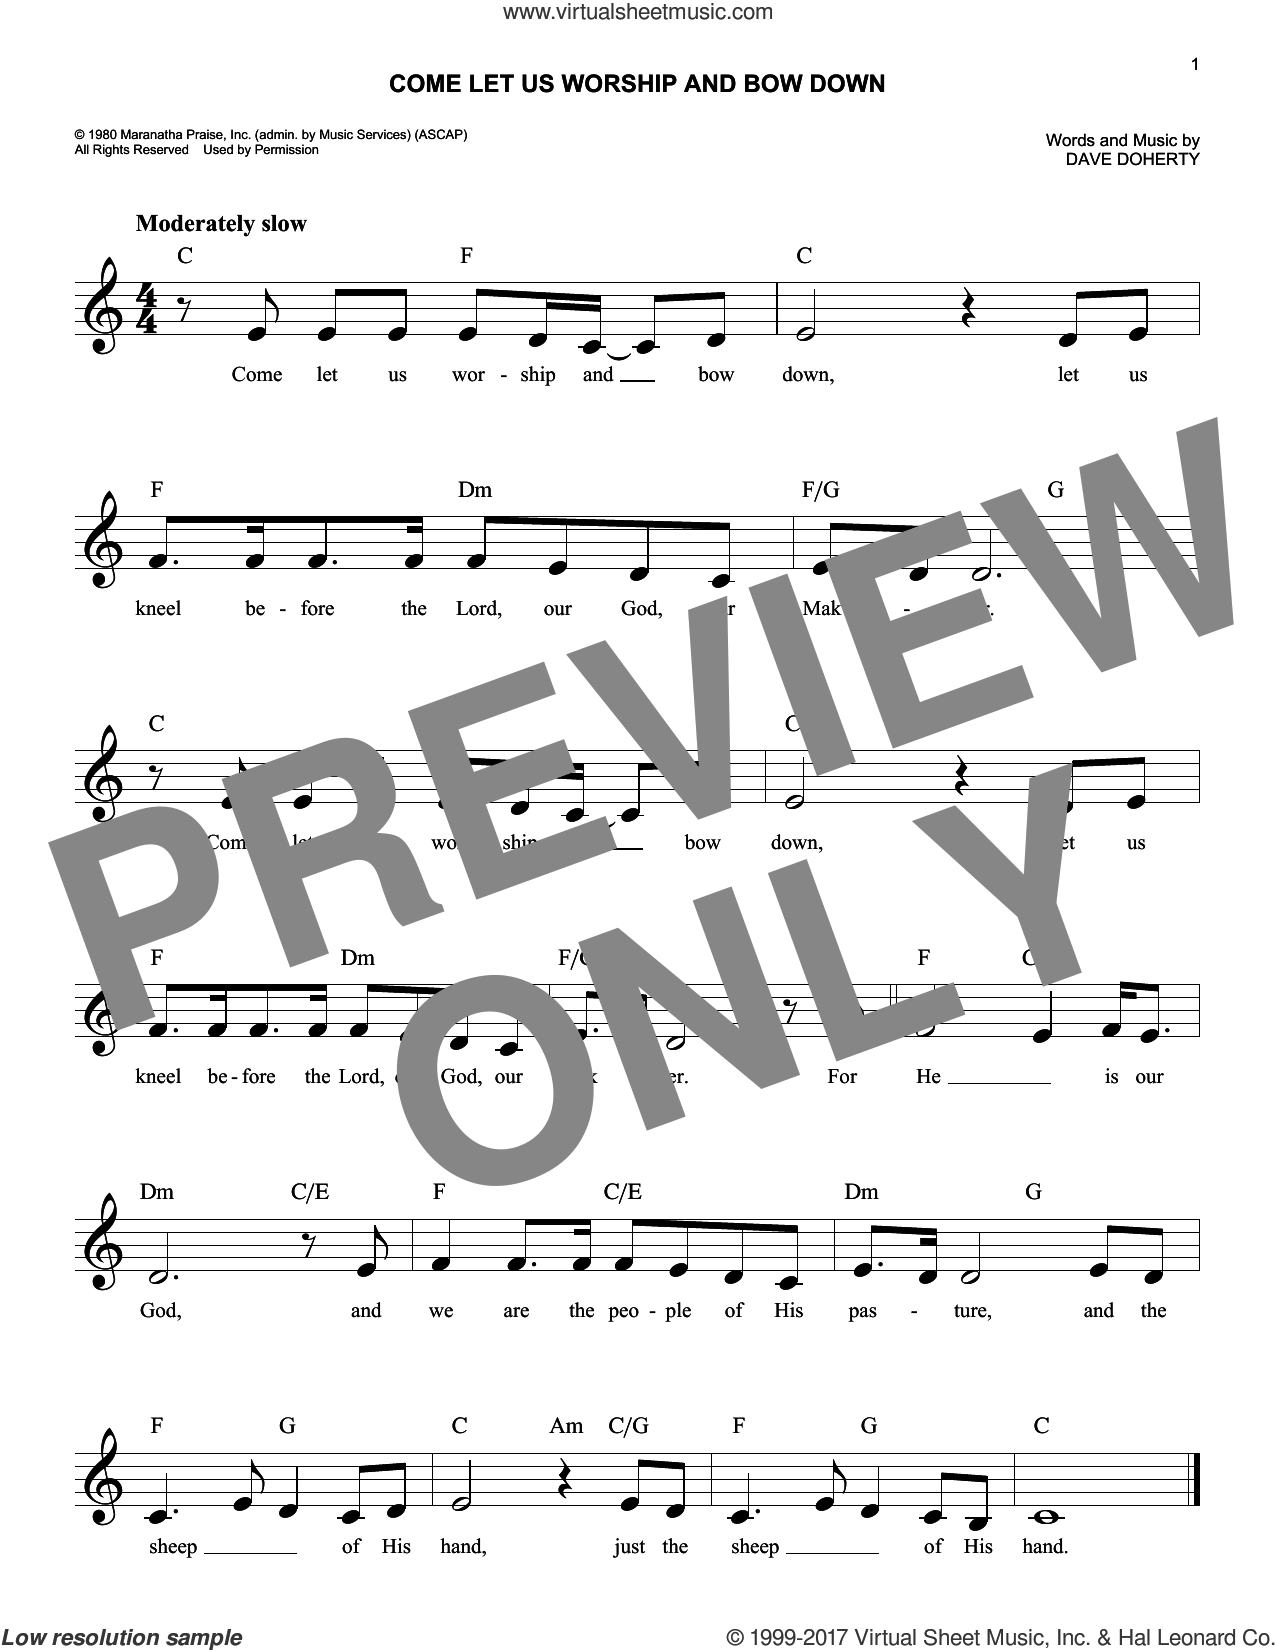 Come Let Us Worship And Bow Down sheet music for voice and other instruments (fake book) by Dave Doherty, intermediate skill level